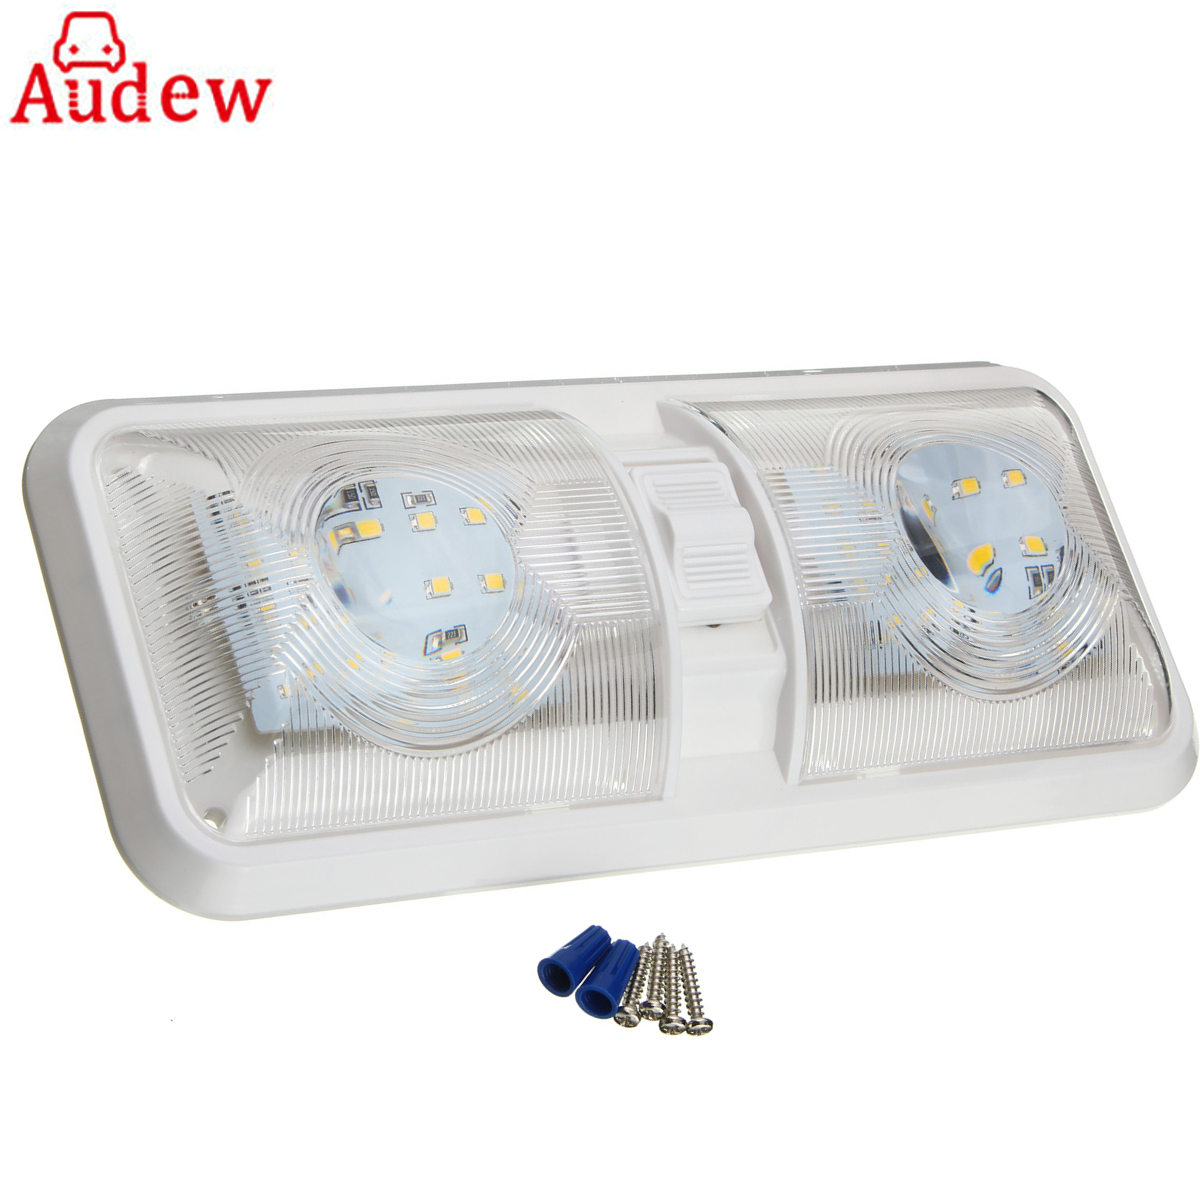 1Pcs Car Dome Light 12V 48 LED Interior Roof Ceiling Reading Lamp For RV Boat For Camper Trailer Plastic White бахтияр хамидуллаевич курикбаев рифма стихи page 4